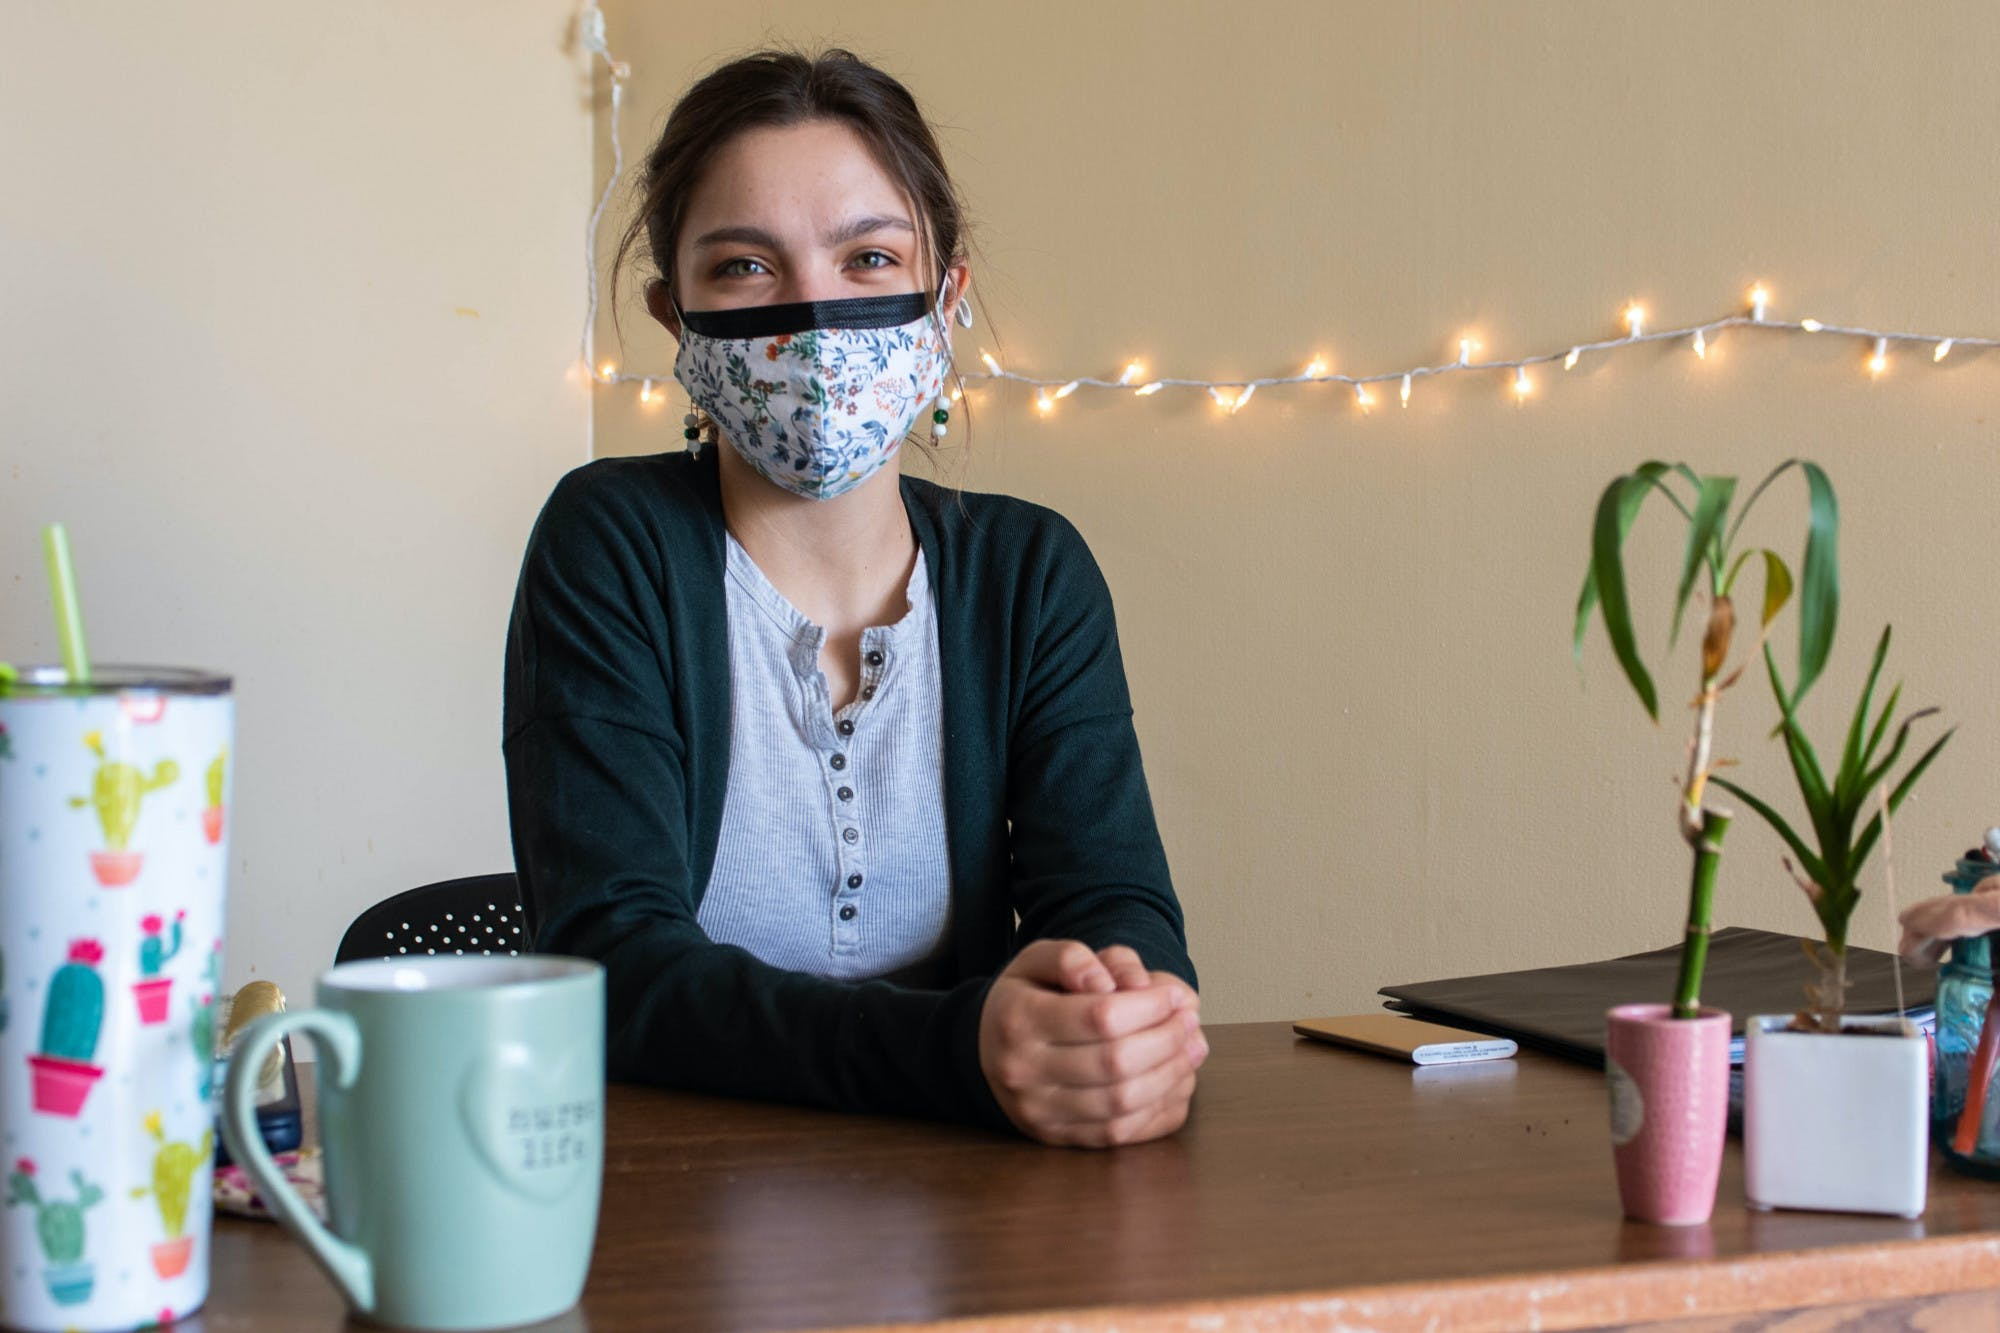 A person wearing two face masks, one with a floral pattern, poses for a photo while sitting at a desk. On the desk are plants, notebooks and mugs. Behind the person is a wall where a strand of white string lights hang.